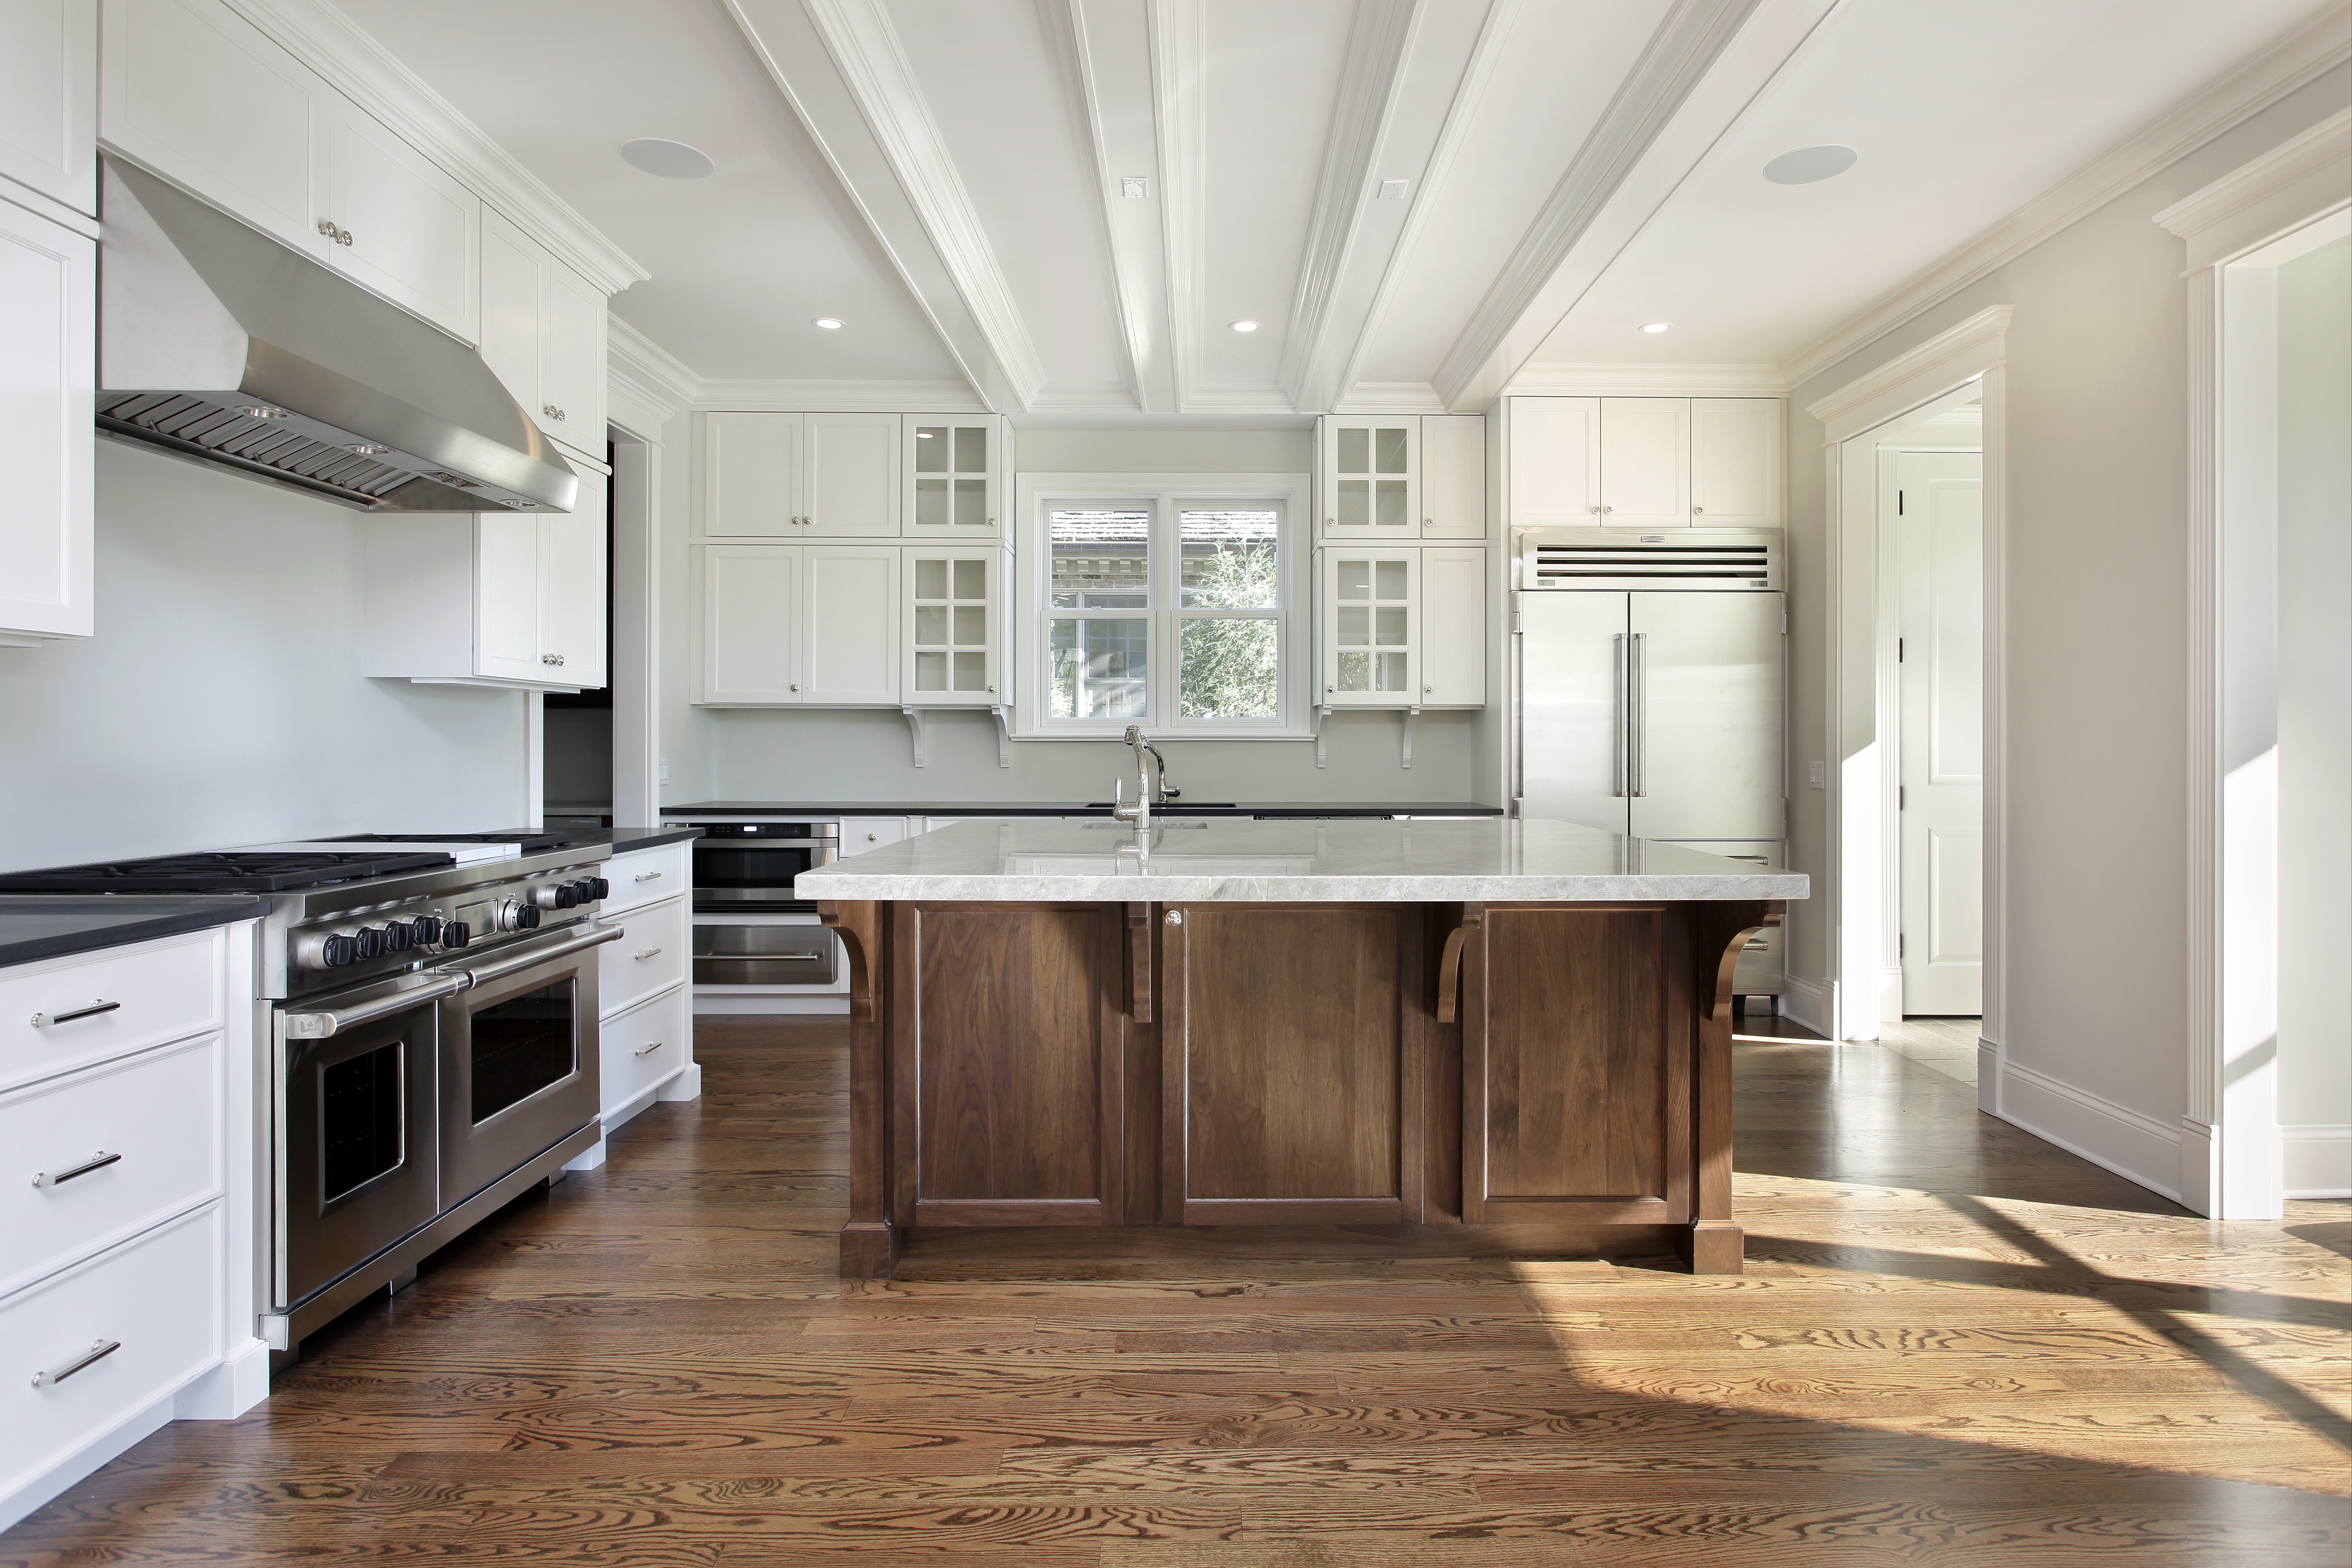 bigstock-Kitchen-in-new-construction-ho-112009484